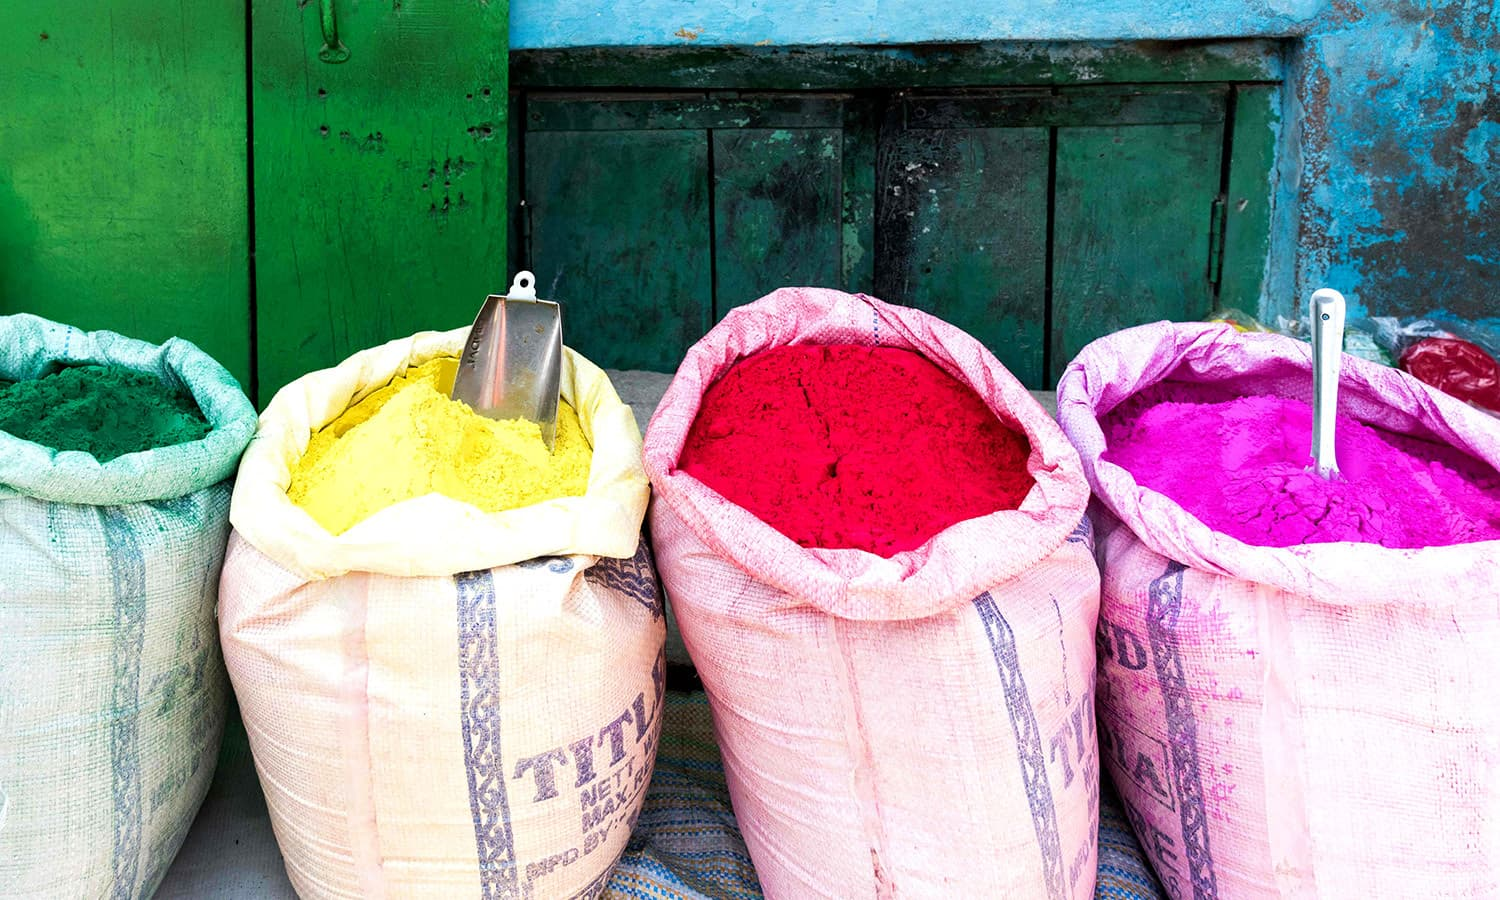 Bags of colourful powder ready to be used for the Holi festival at the Radha Rani temple in Barsana. ─ AFP